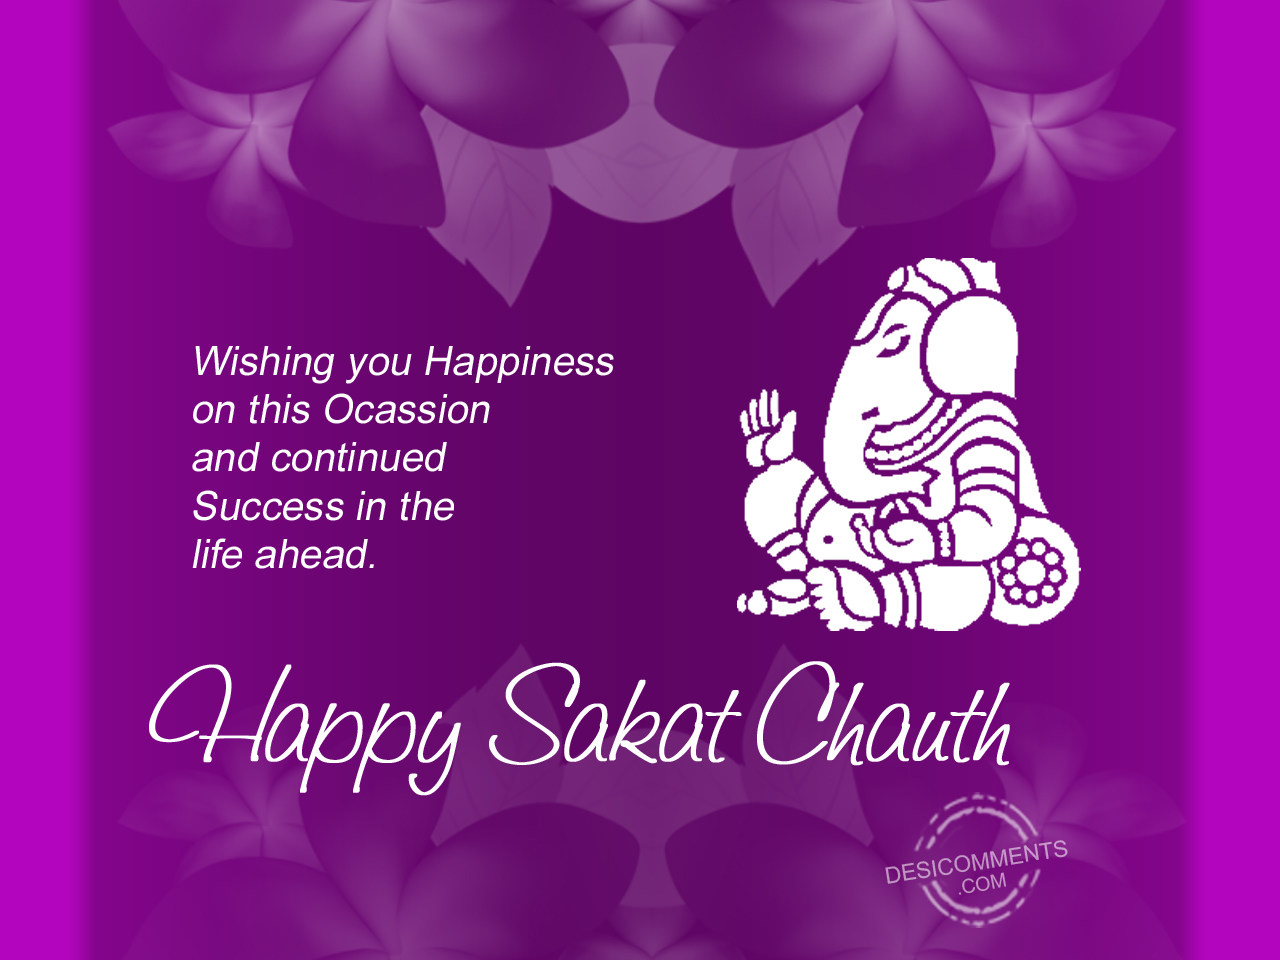 Best Happy Sakat Chauth Festival Image for free download